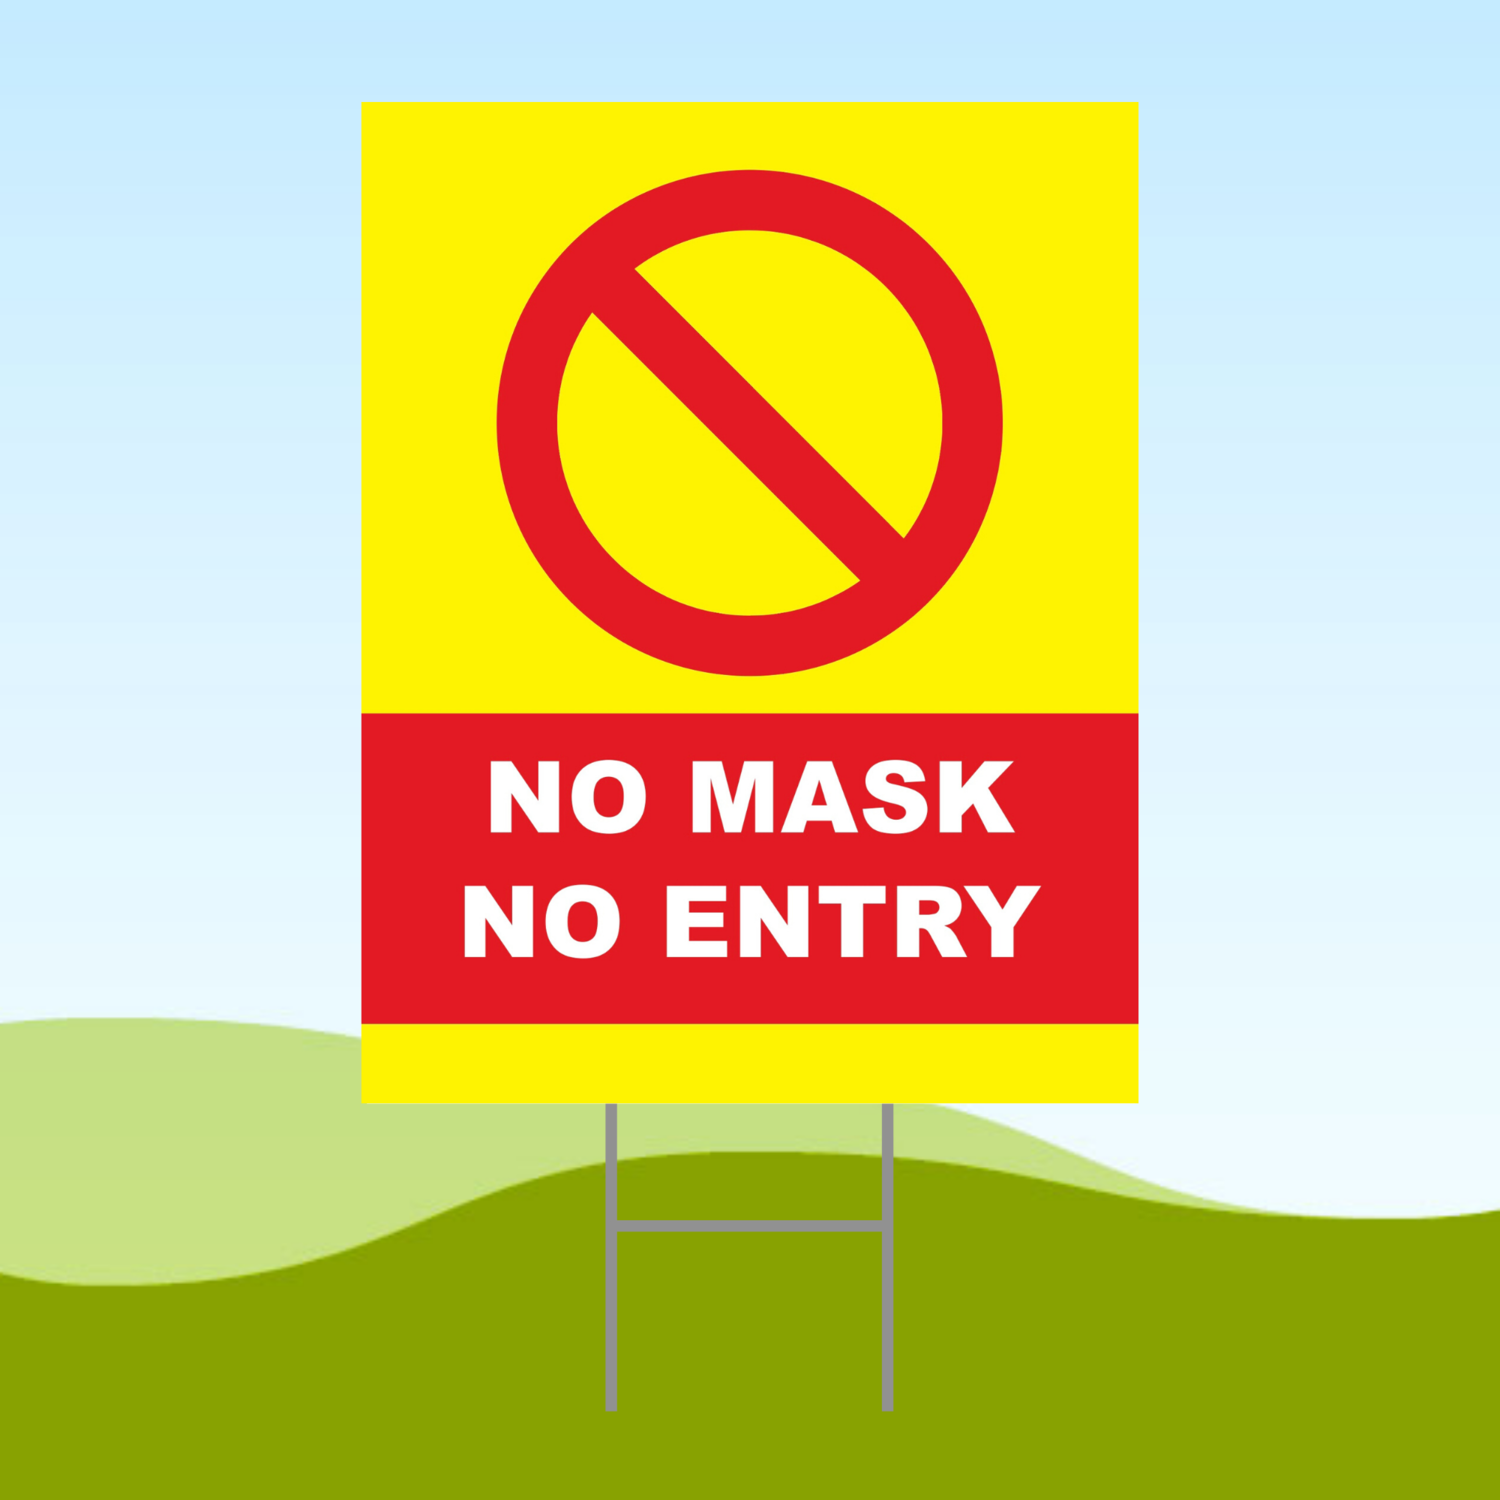 No Mask No Entry Yellow3 18x24 Yard Sign WITH STAKE Corrugated Plastic Bandit